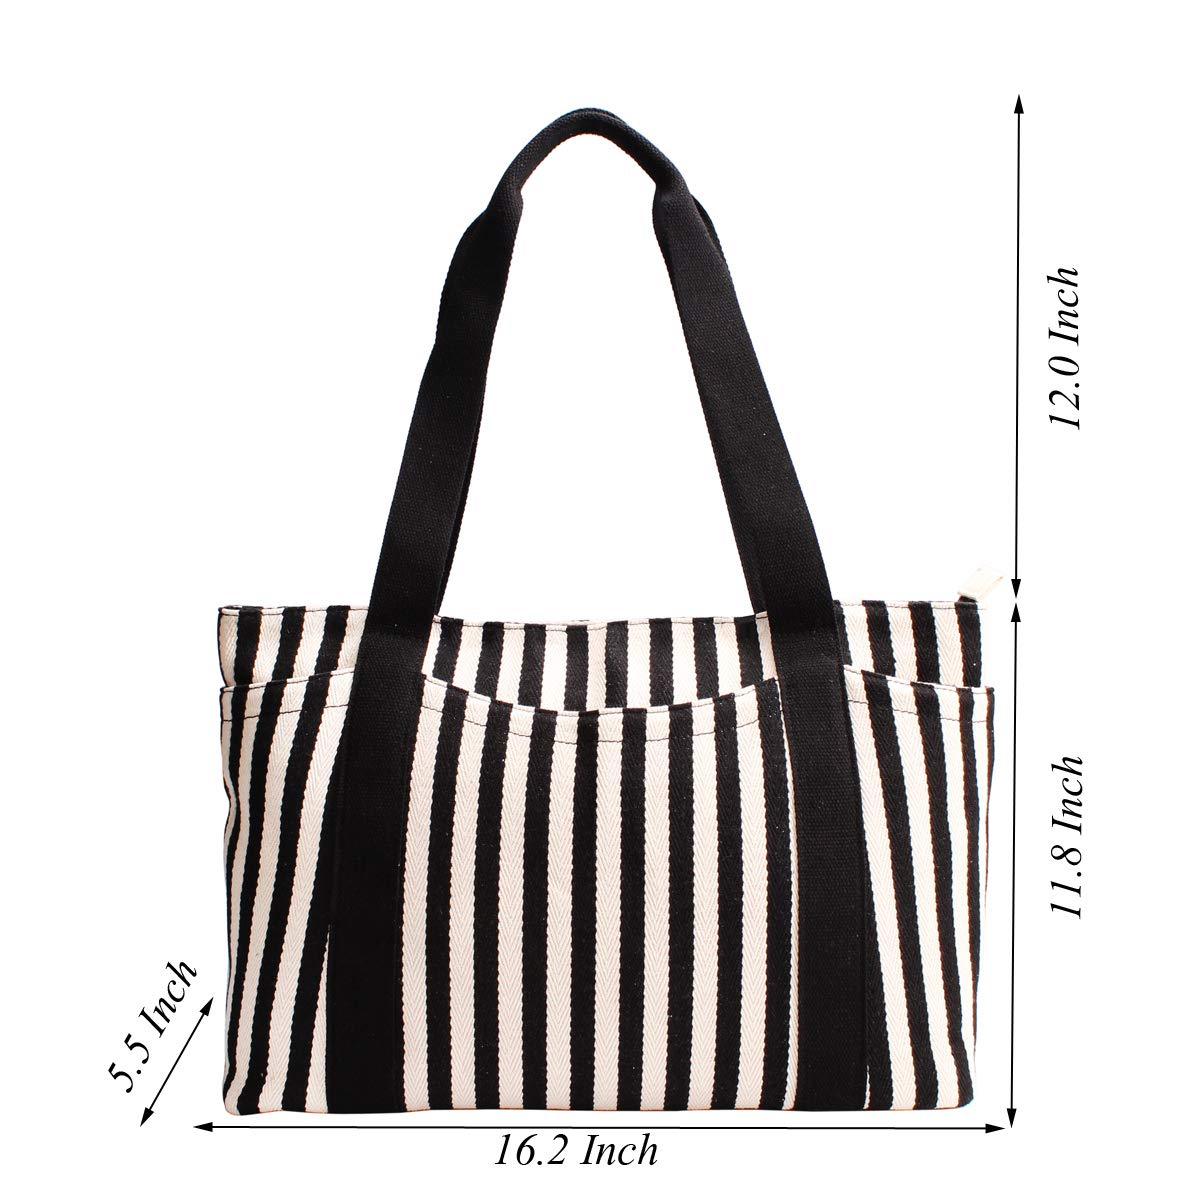 Canvas Tote Bag with Multiple Pocket/Zipper Closure Sholuder Bag/Travel Bag for Weekend/7 Pocket/Perfect Bag for Gift by sornean (Image #6)